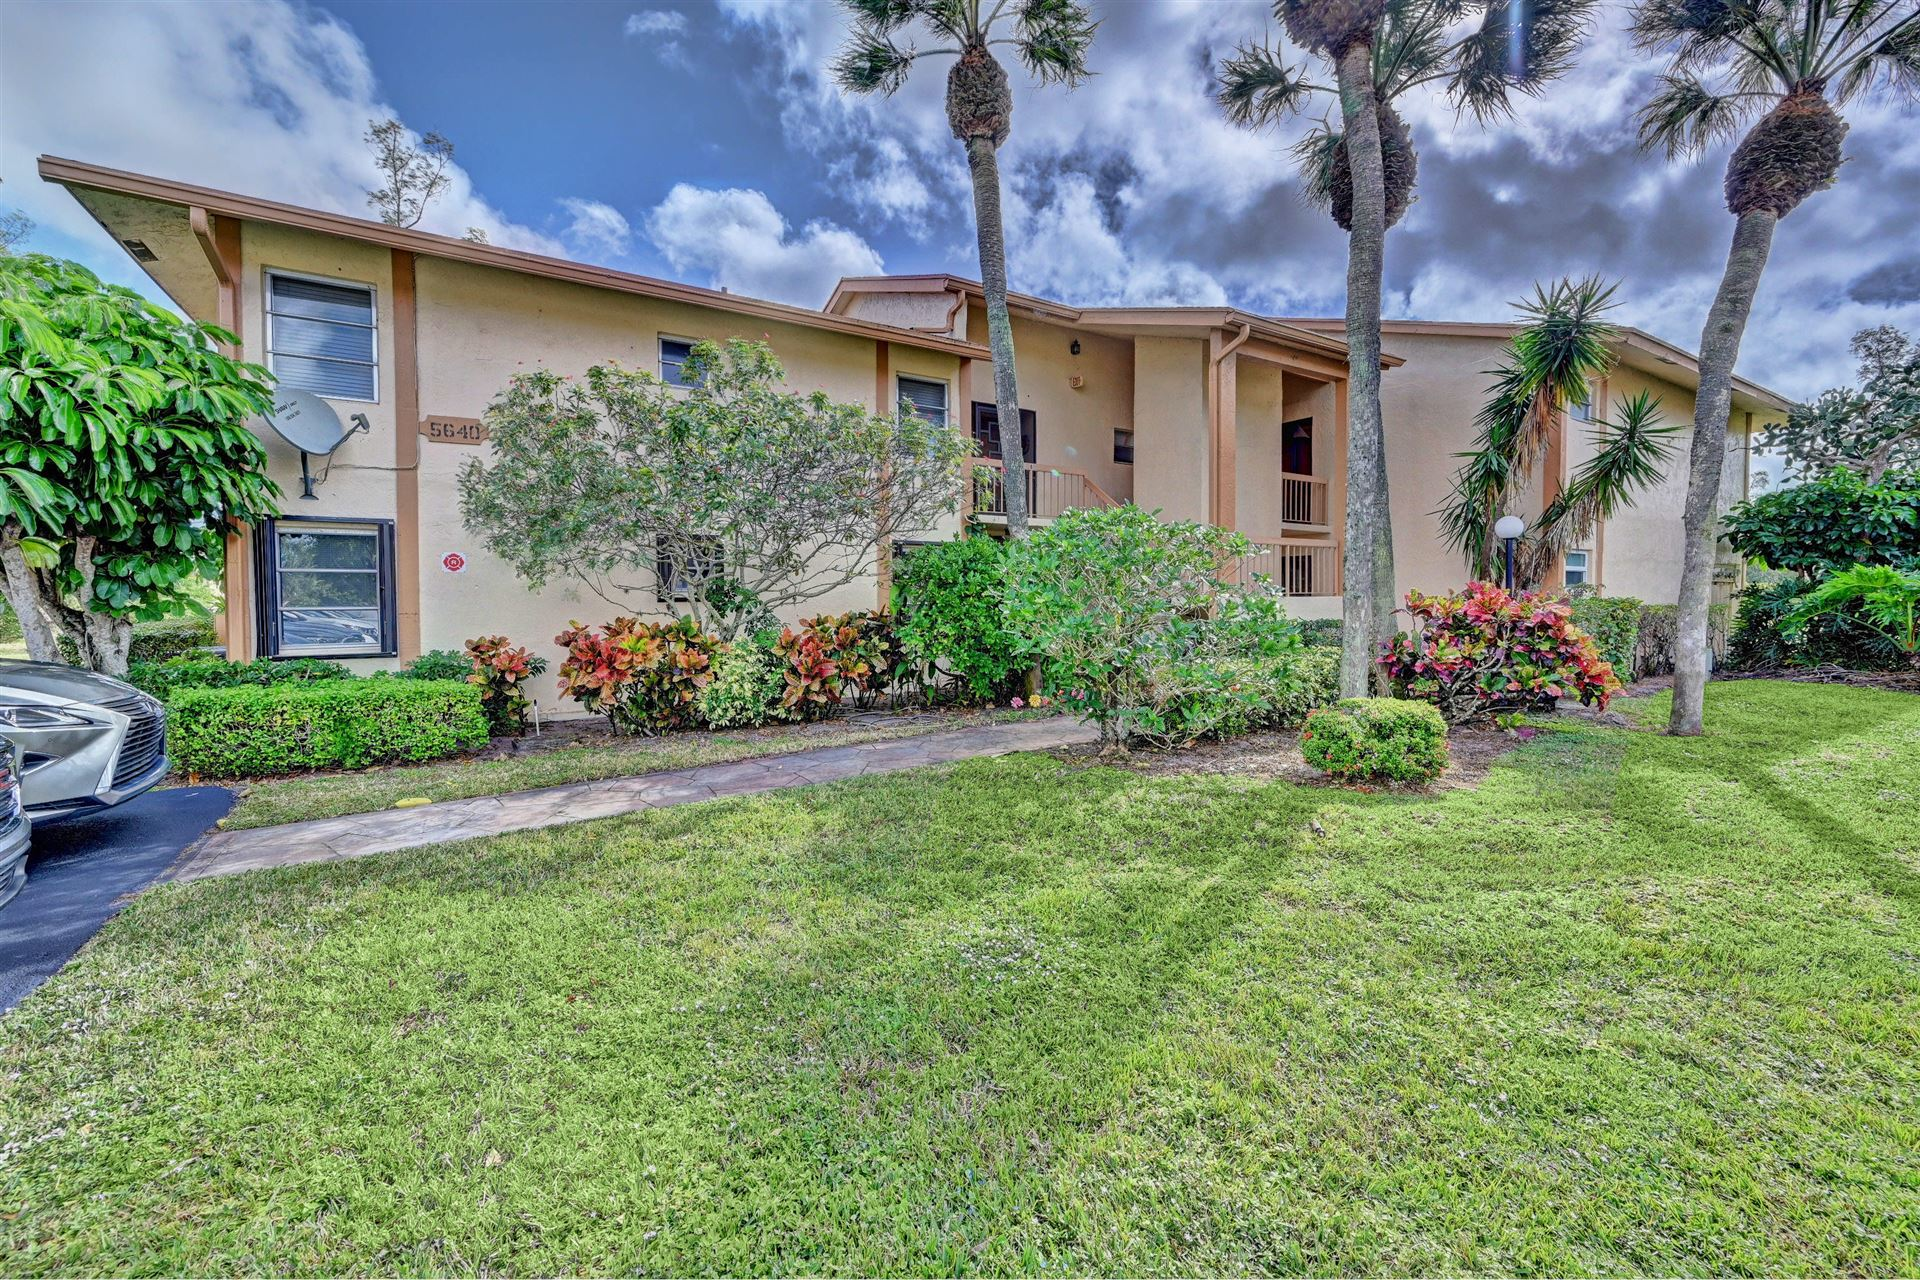 5640 Spindle Palm Court A, Delray Beach, FL 33484 - #: RX-10681330